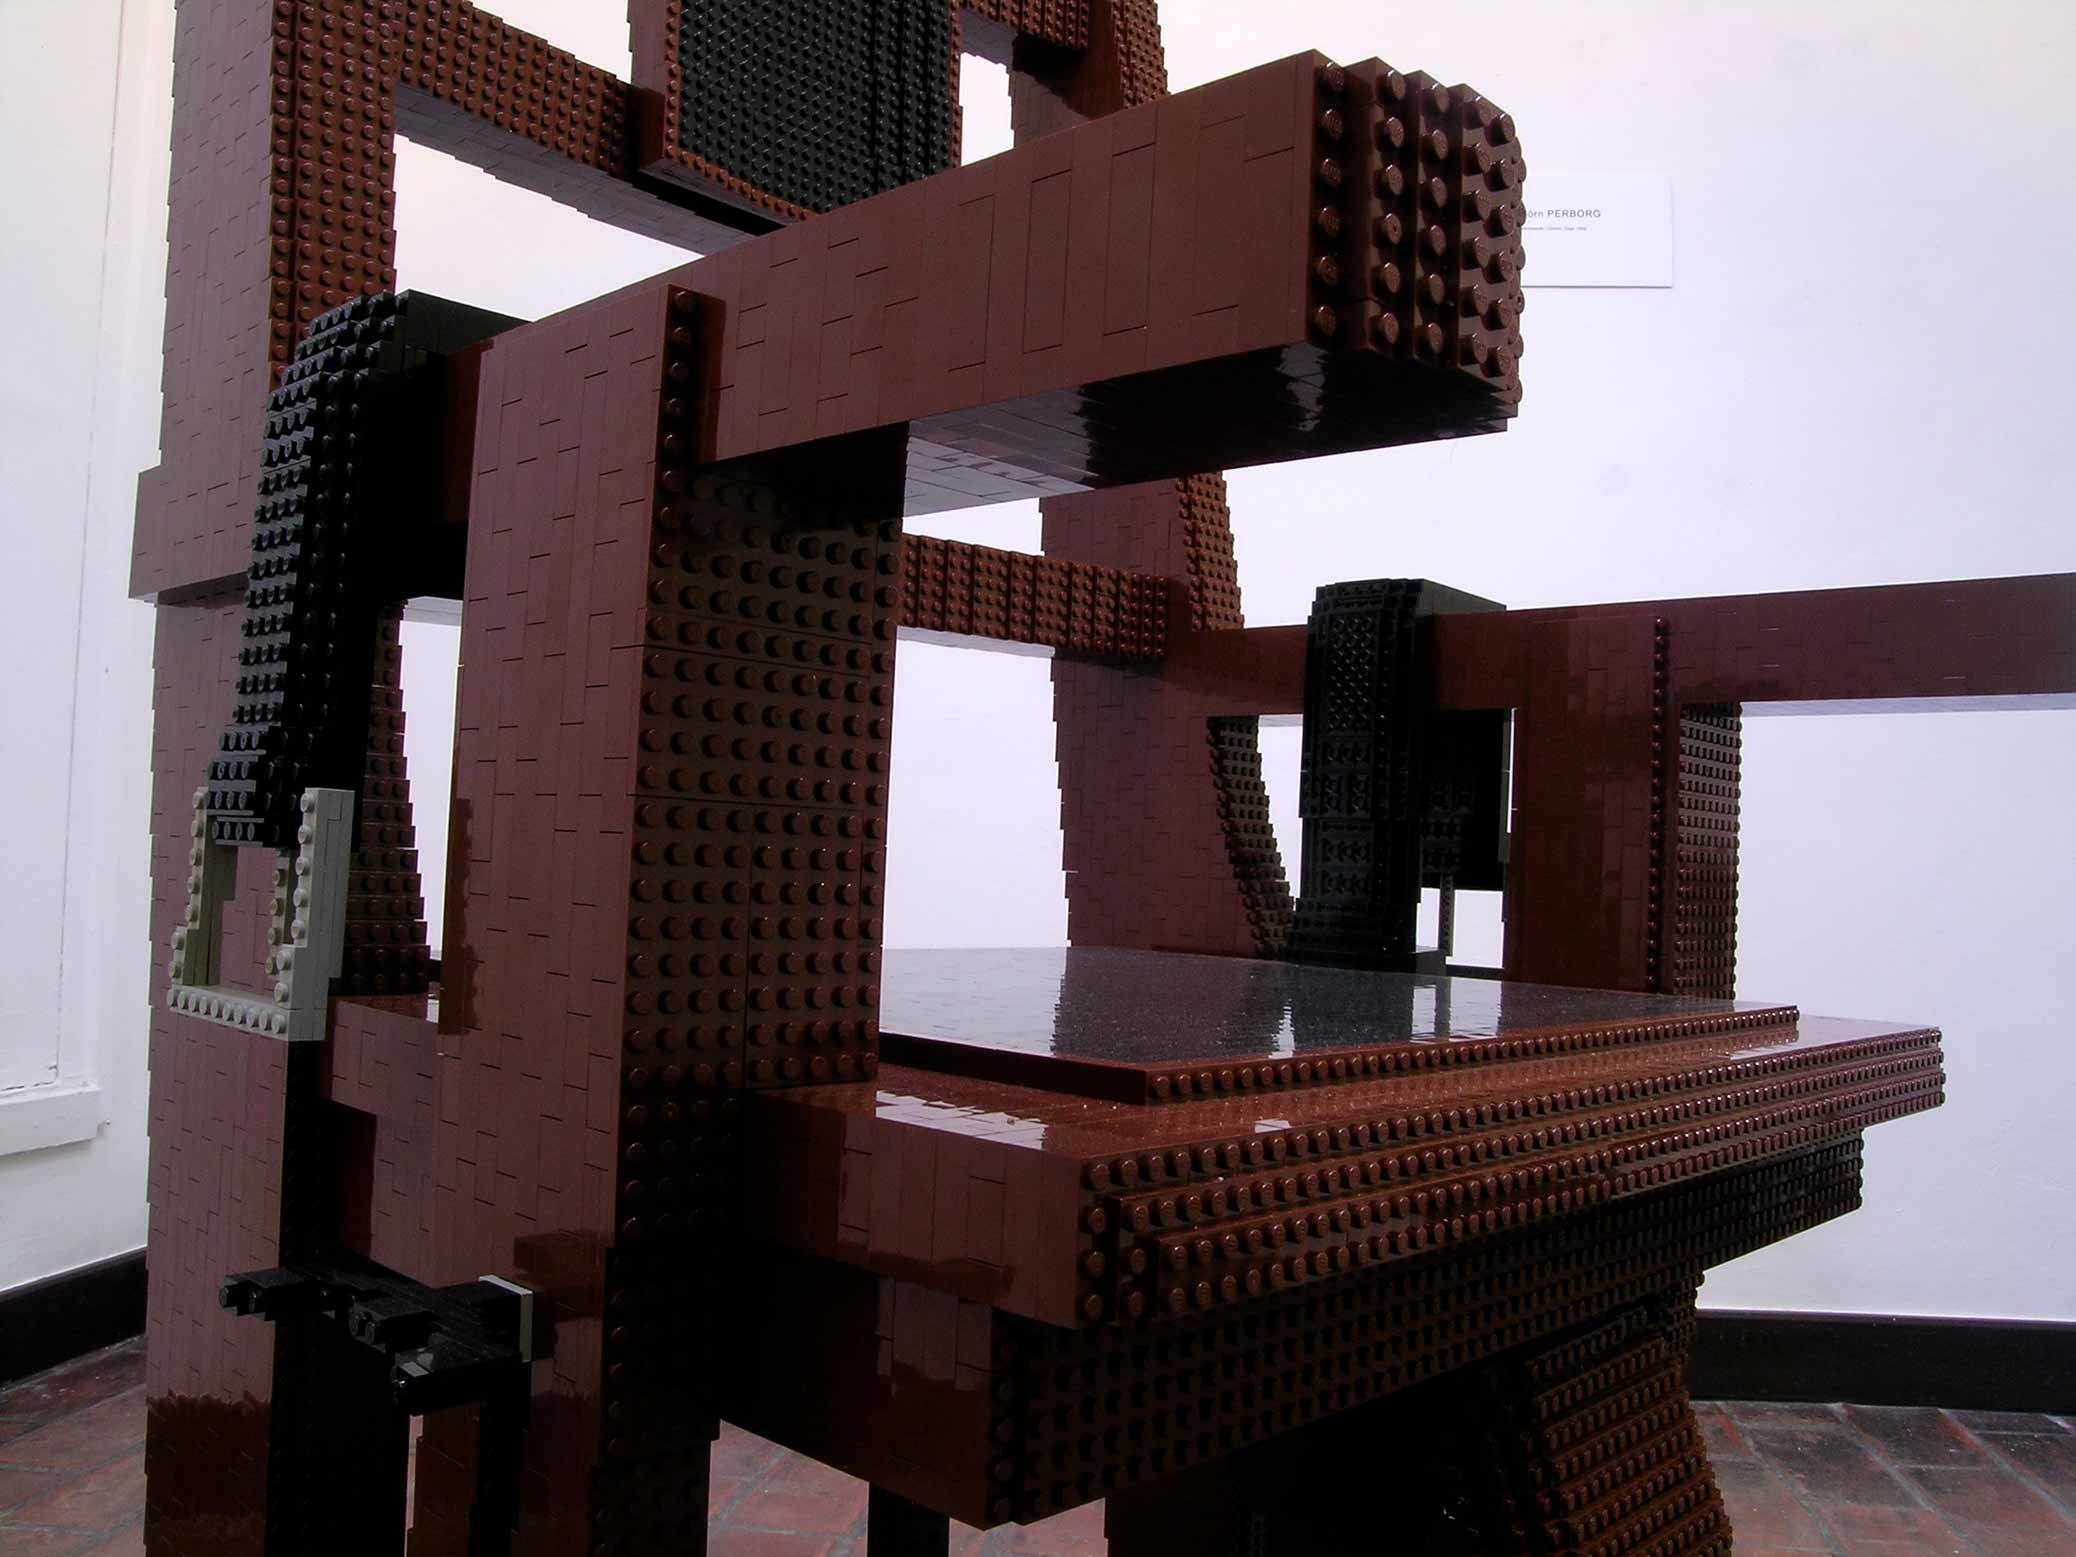 Electric Chair, sculpture made from LEGO, detail.